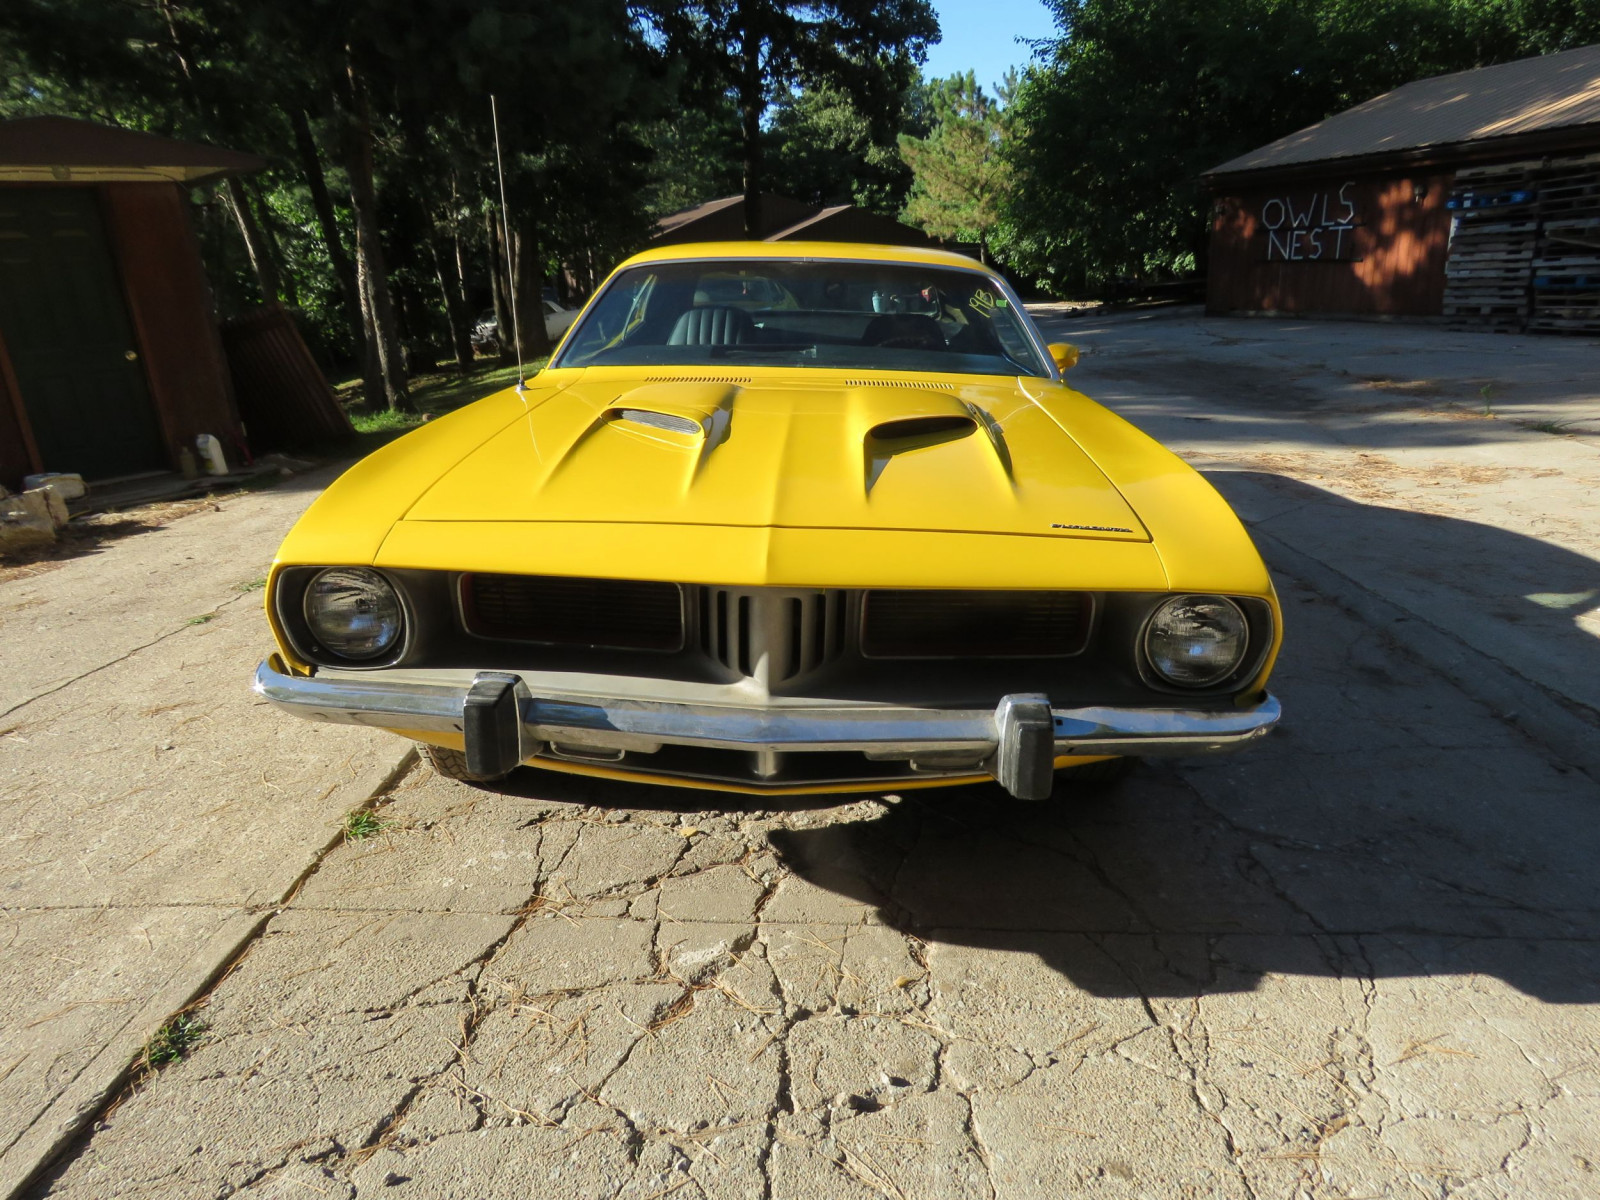 1973 Plymouth Barracuda 2dr HT - Image 2